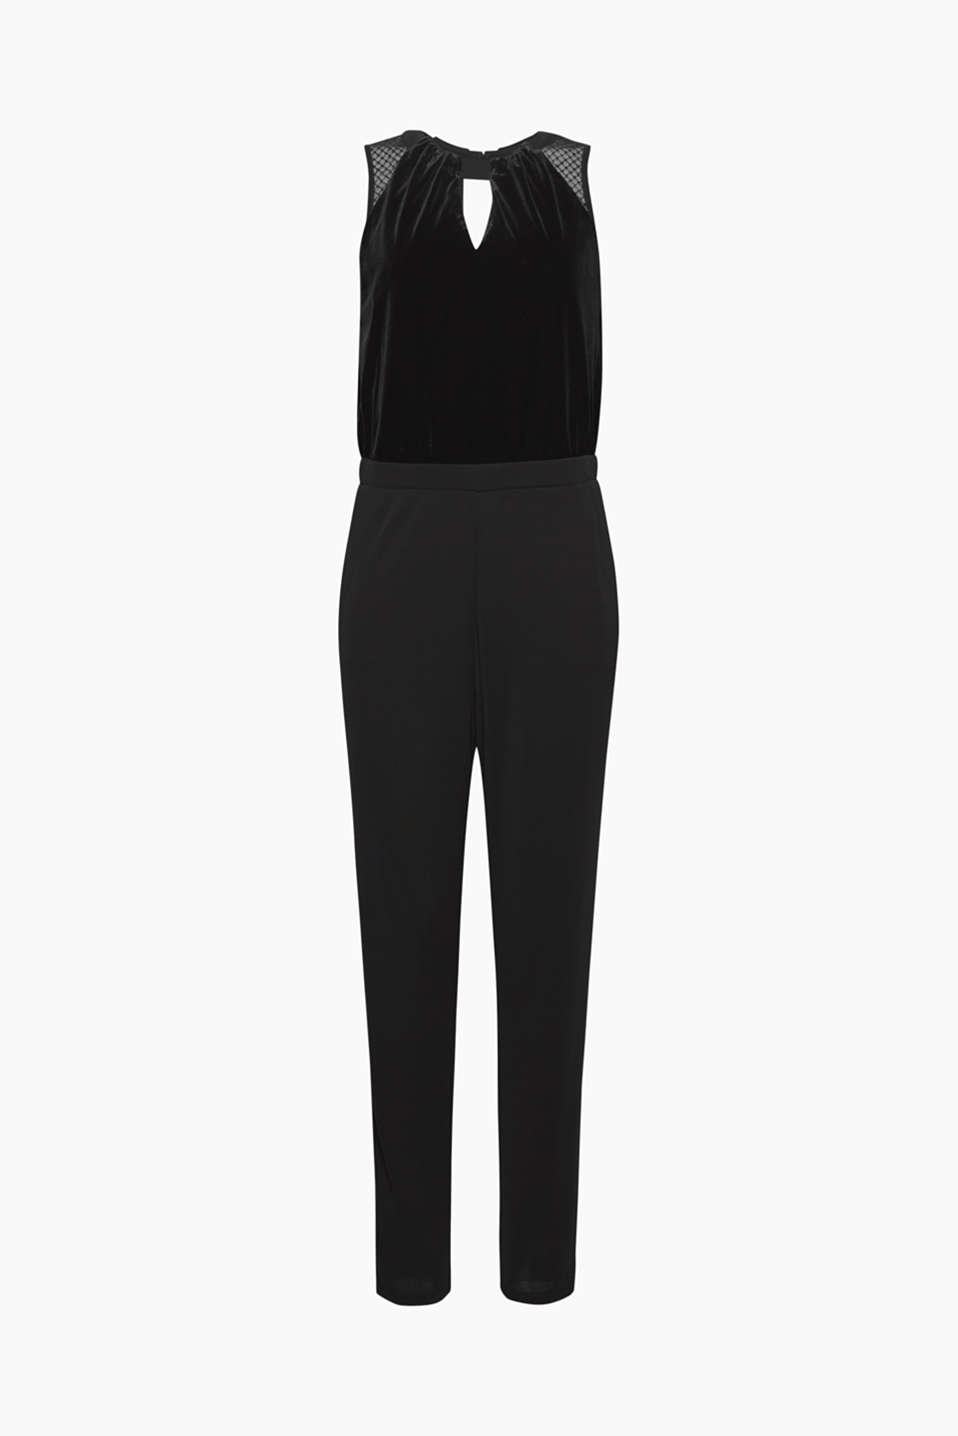 Party and celebration wear: This jumpsuit made of velvet, jersey and lace is the top alternative to a cocktail dress!